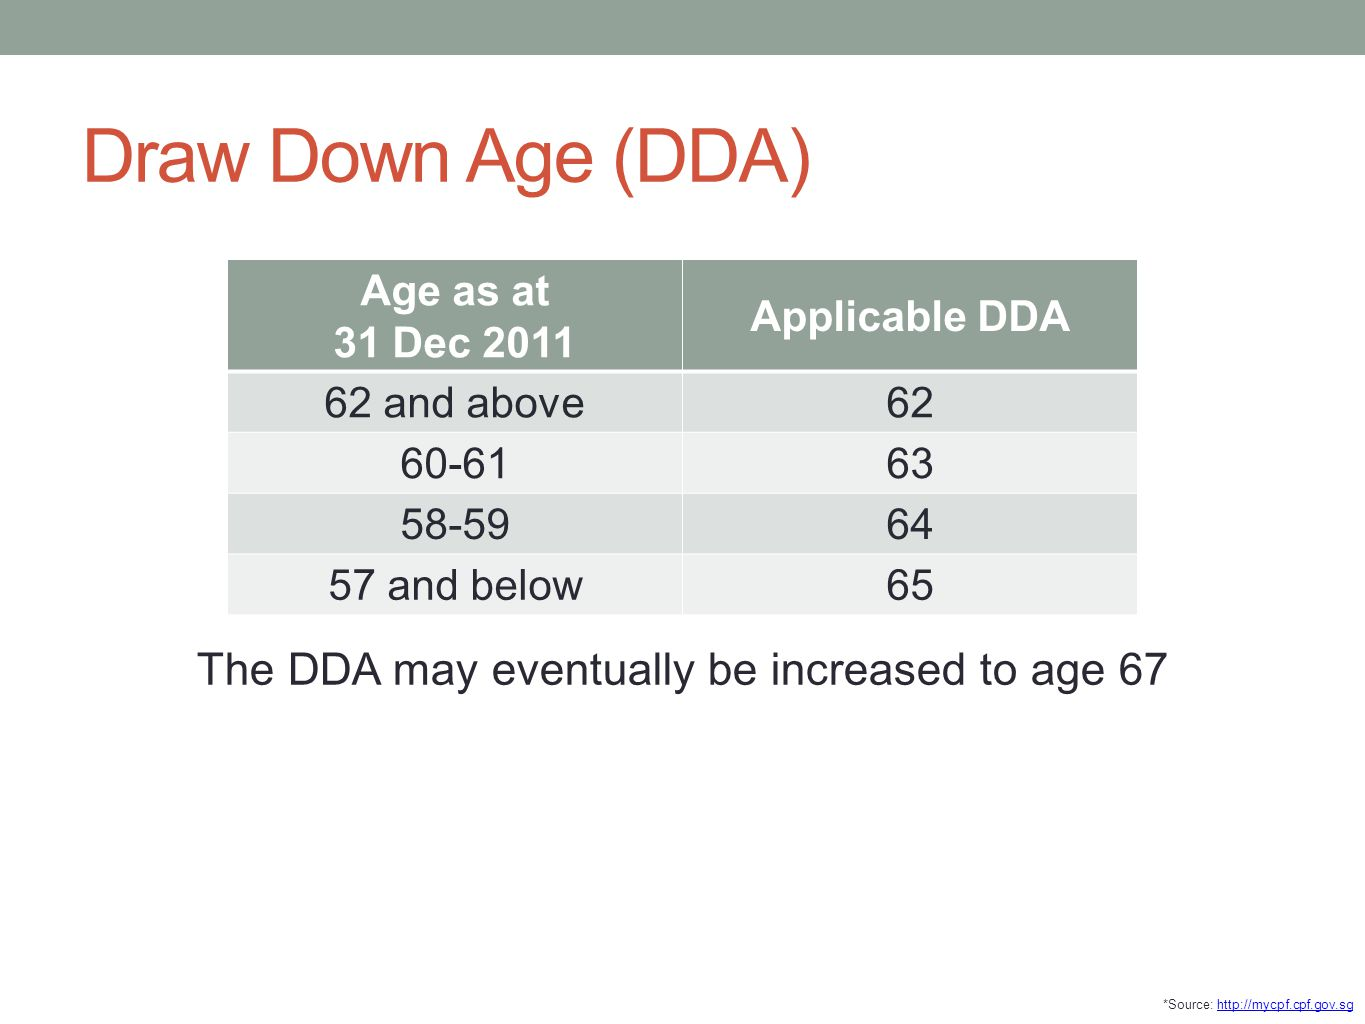 The DDA may eventually be increased to age 67